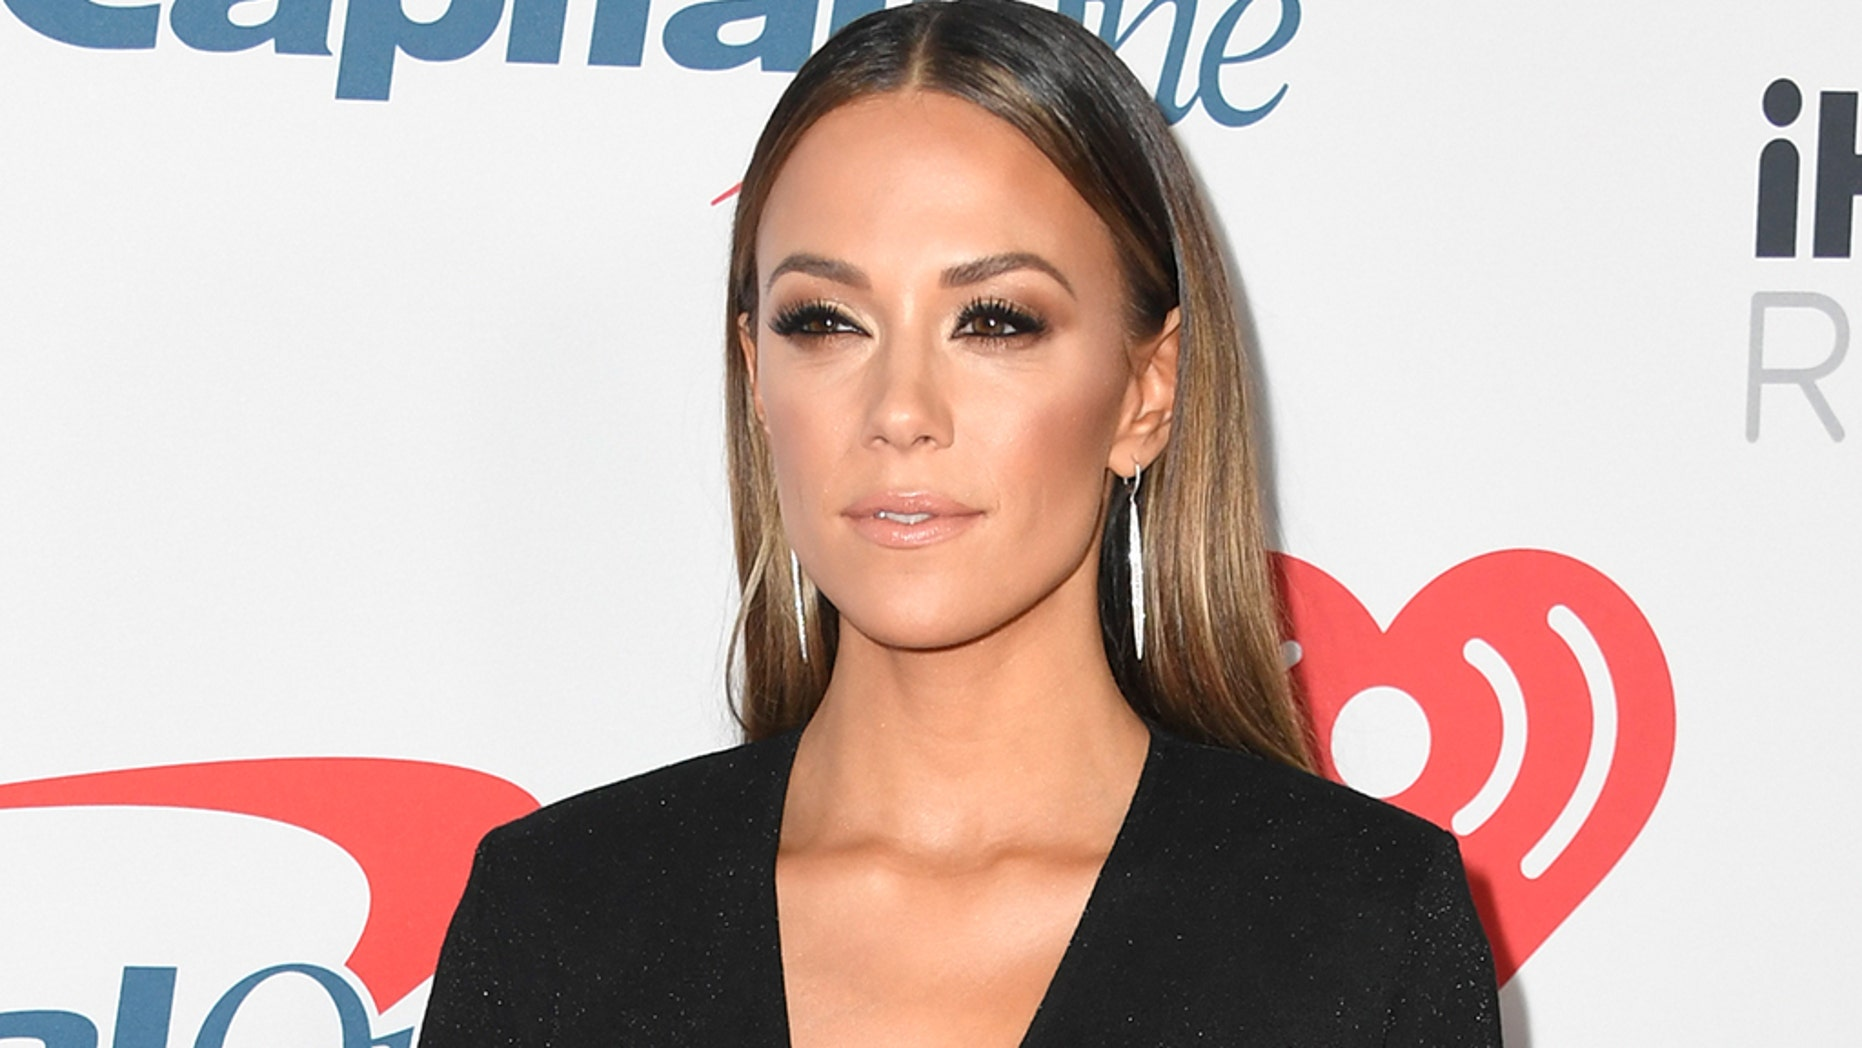 Images Jana Kramer nudes (57 foto and video), Sexy, Fappening, Boobs, swimsuit 2019